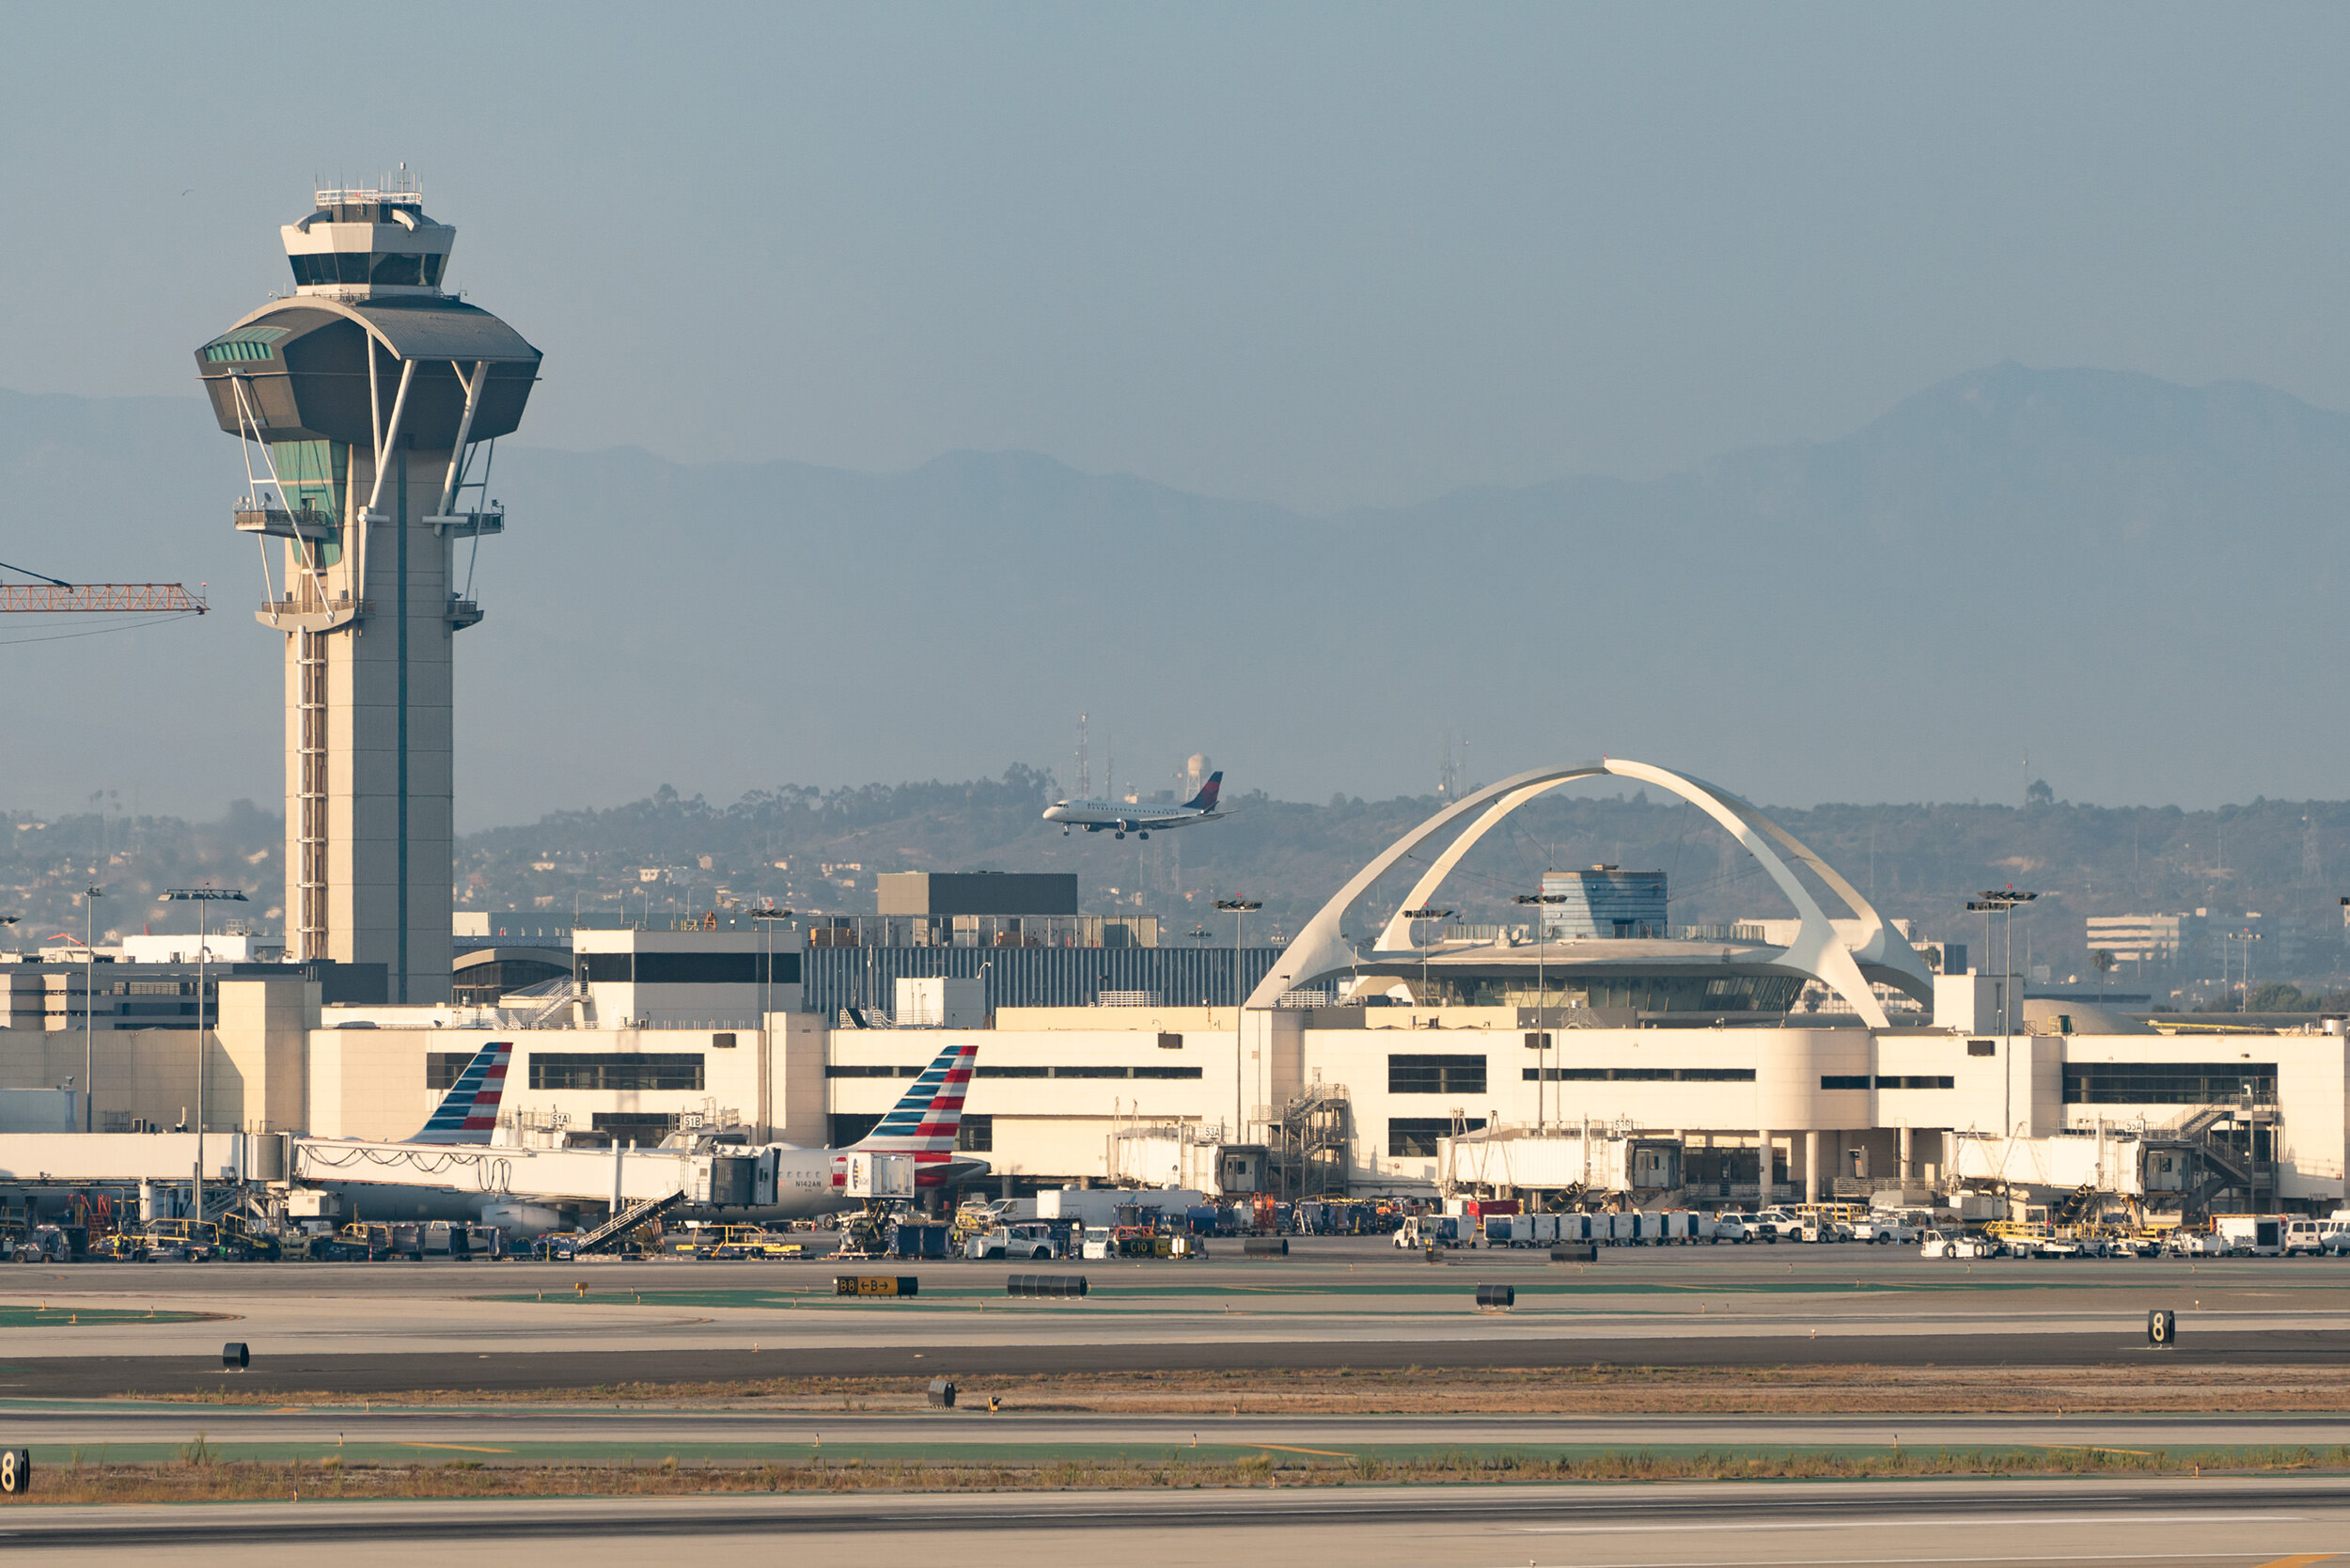 <i>AaronP/Bauer-Griffin/GC Images/Getty Images/FILE</i><br/>Air traffic controllers warned pilots that a person in a jetpack was spotted flying near LAX.